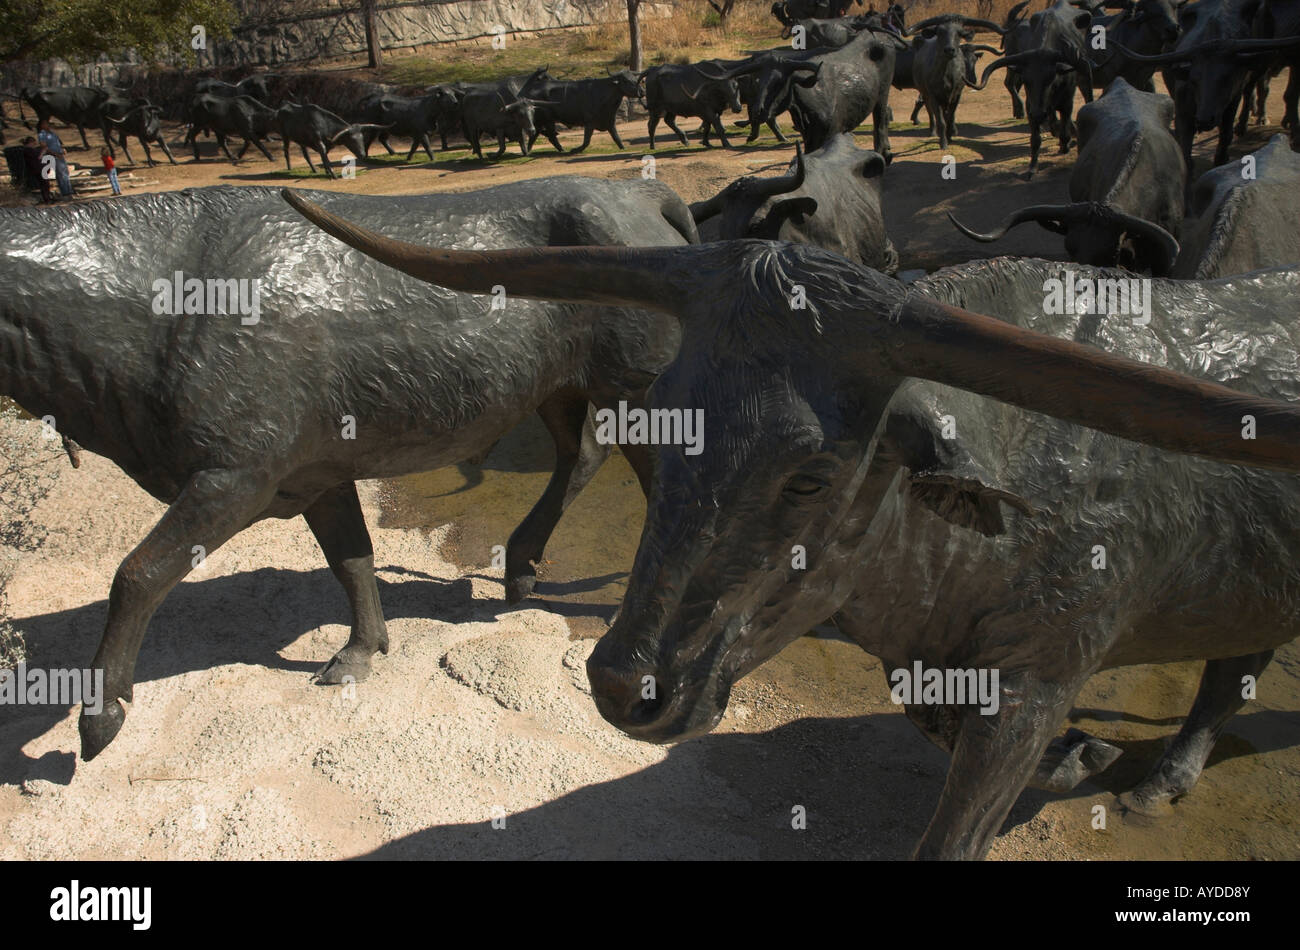 Statue of longhorn cattle in Dallas, texas - Stock Image